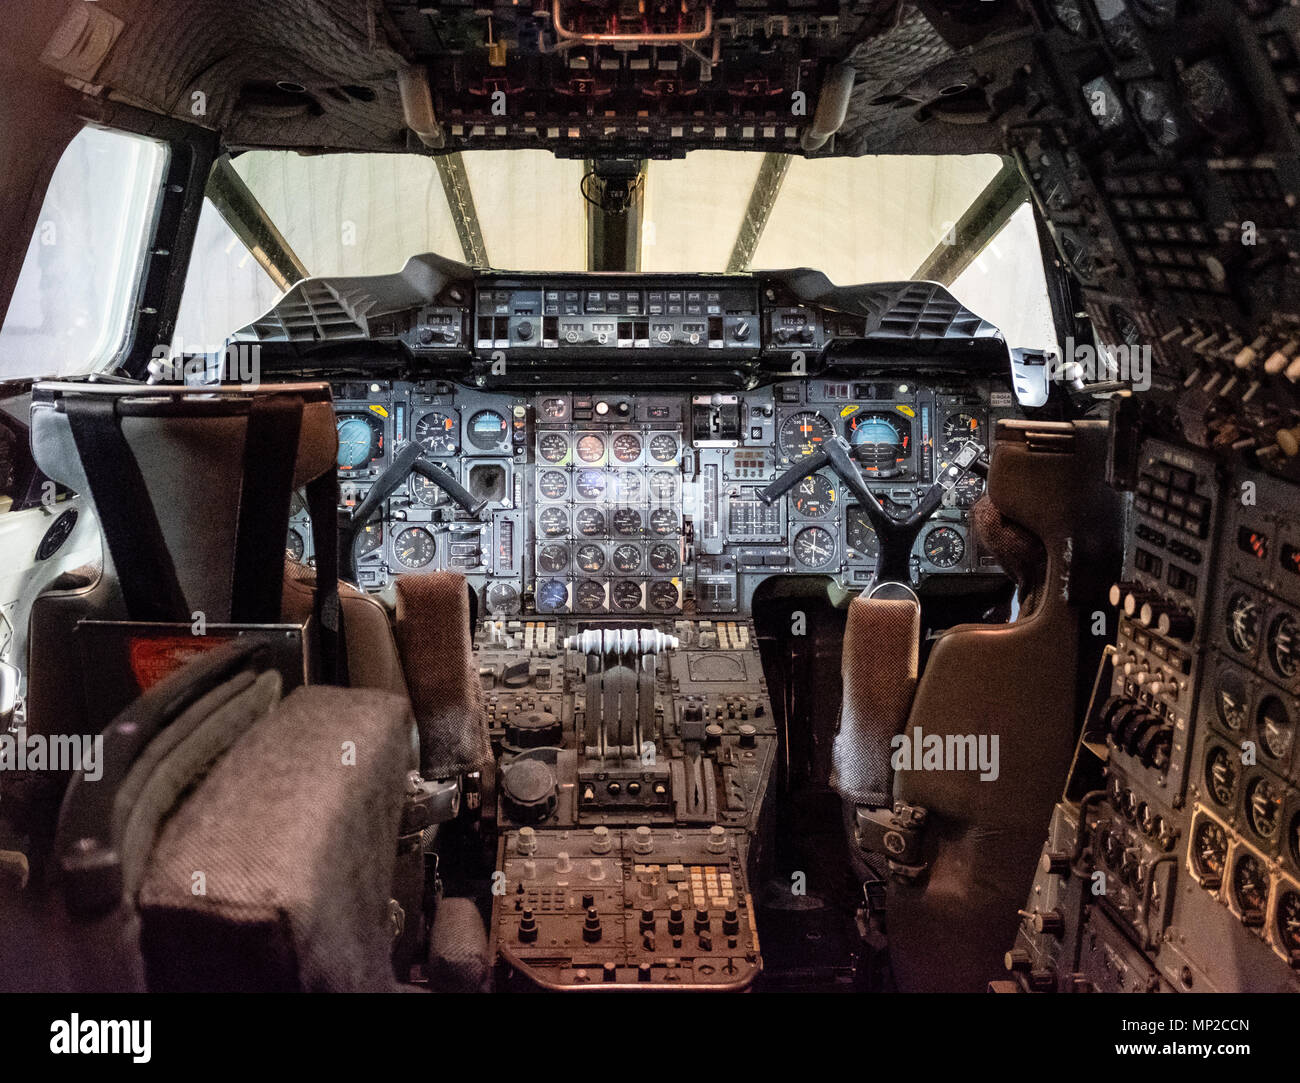 Cockpit Interior Of British Airways Concorde On Display In Hanger At  National Museum Of Flight At